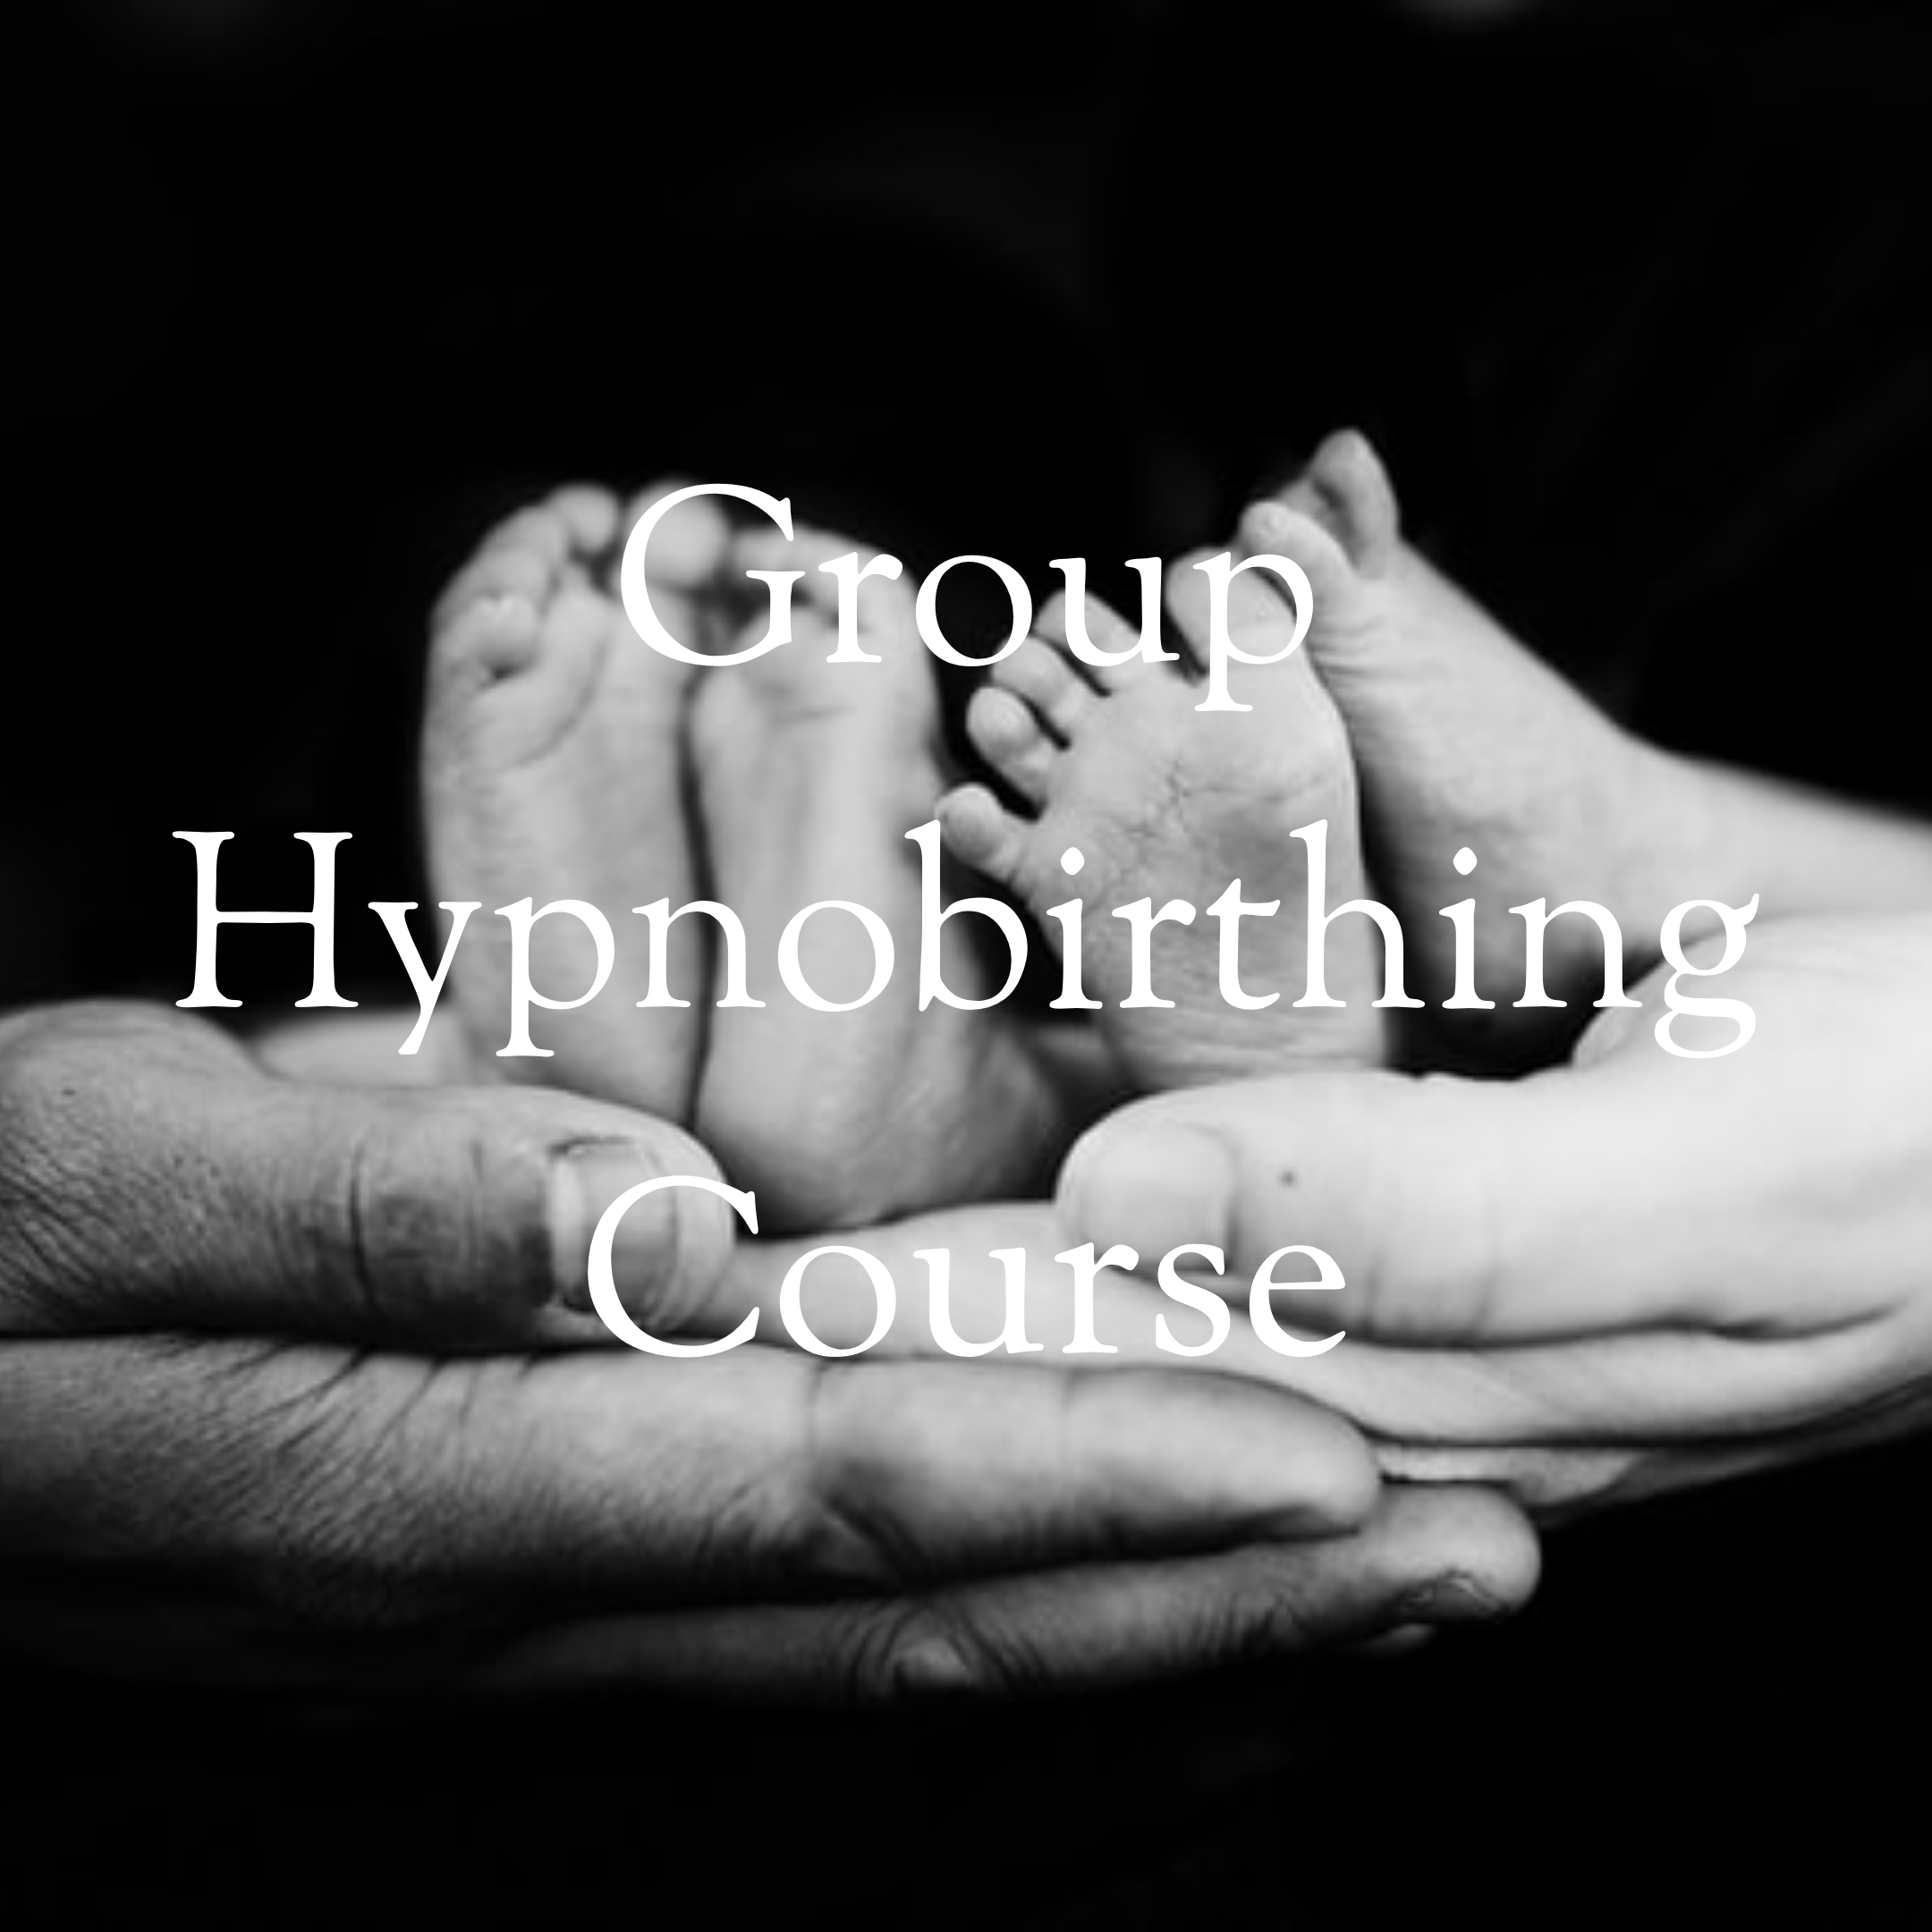 Set of feet and hands for group hypnobirthing